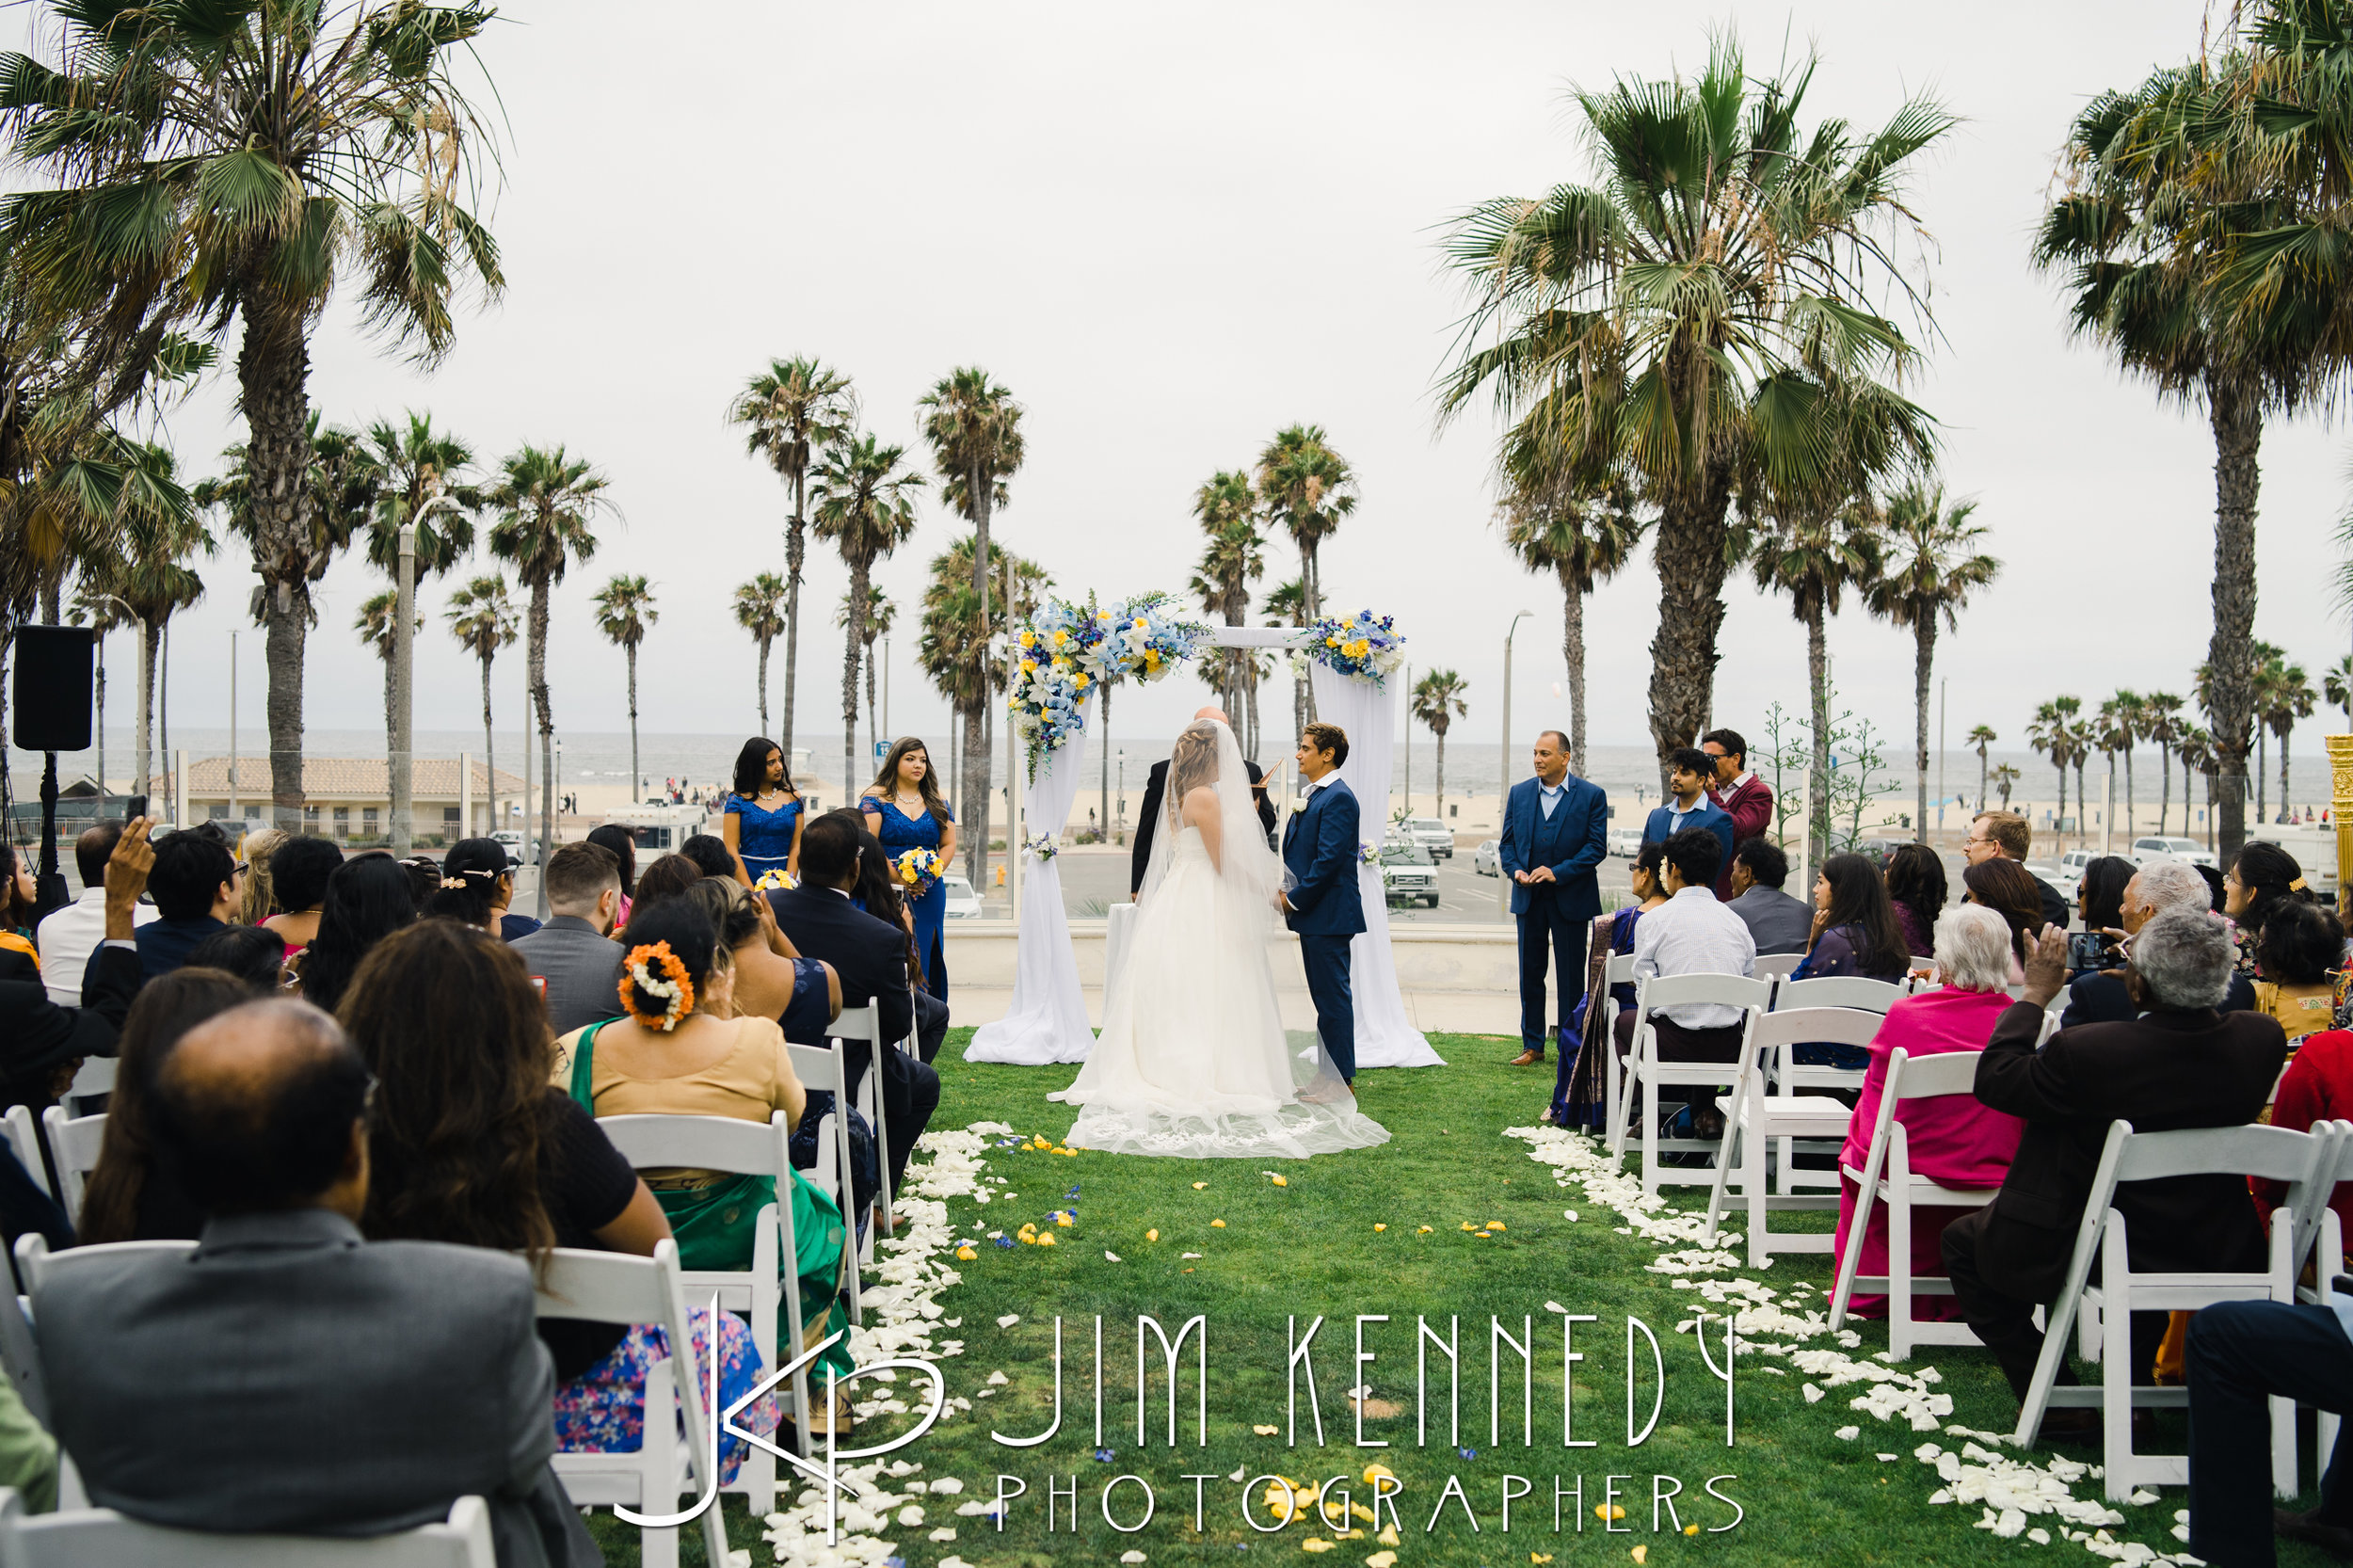 hyatt-huntington-beach-wedding_0076.JPG